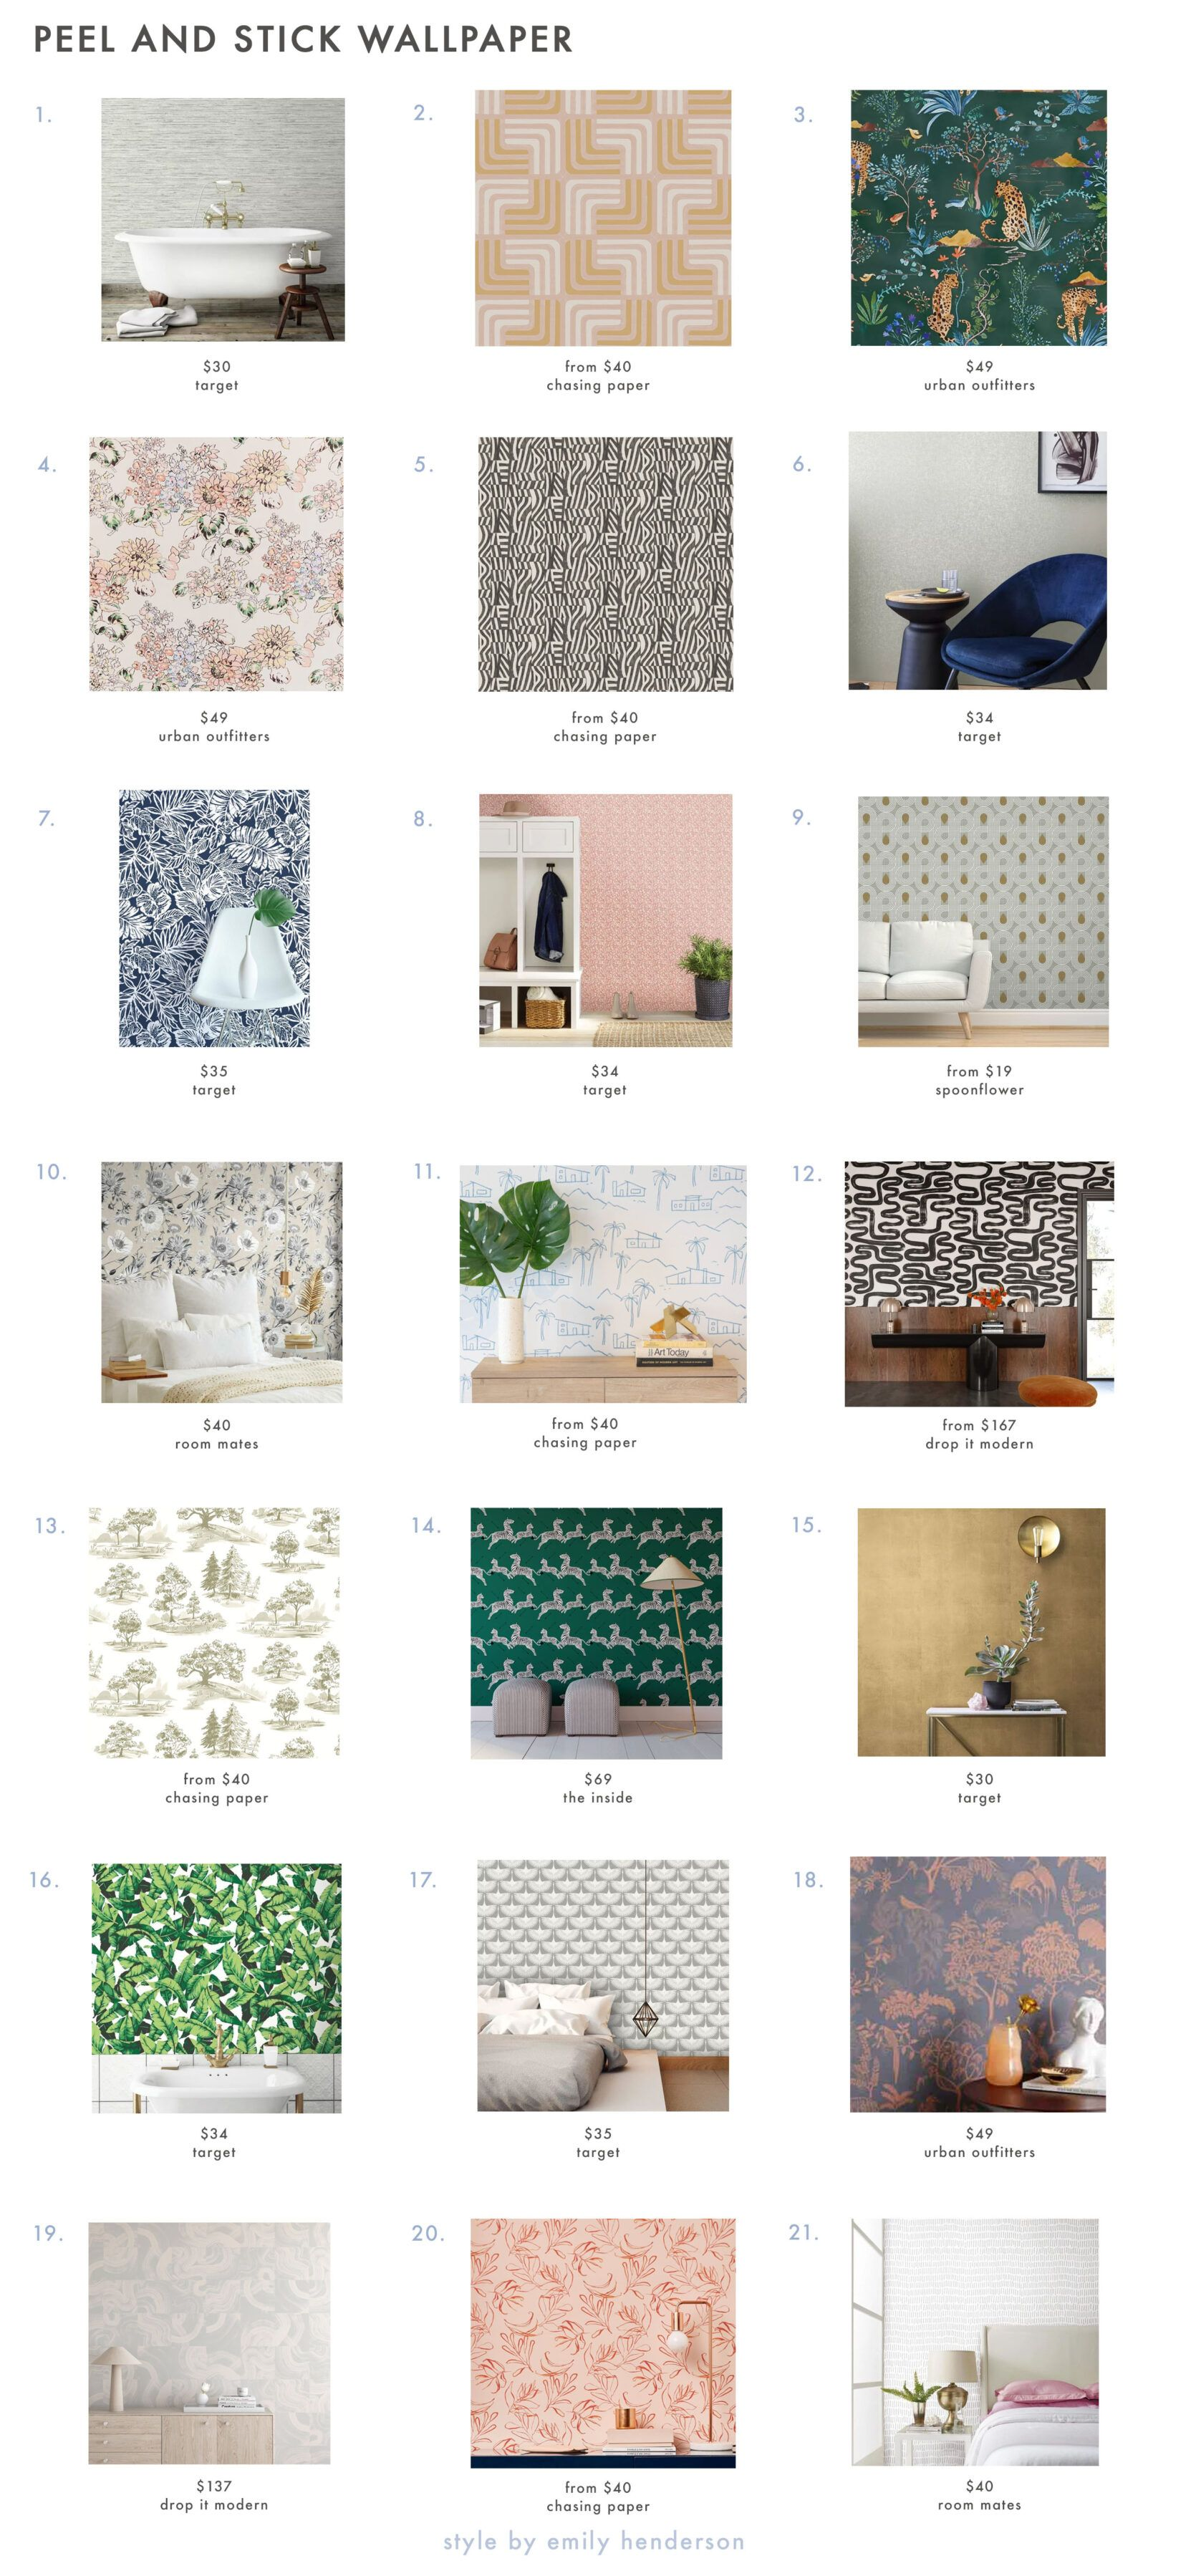 The Best Peel And Stick Wallpapers For Your Rental Apartment Or Really Any Space Help Mallory Choose One For Her Bathroom Emily Henderson Peel And Stick Wallpaper Emily Henderson